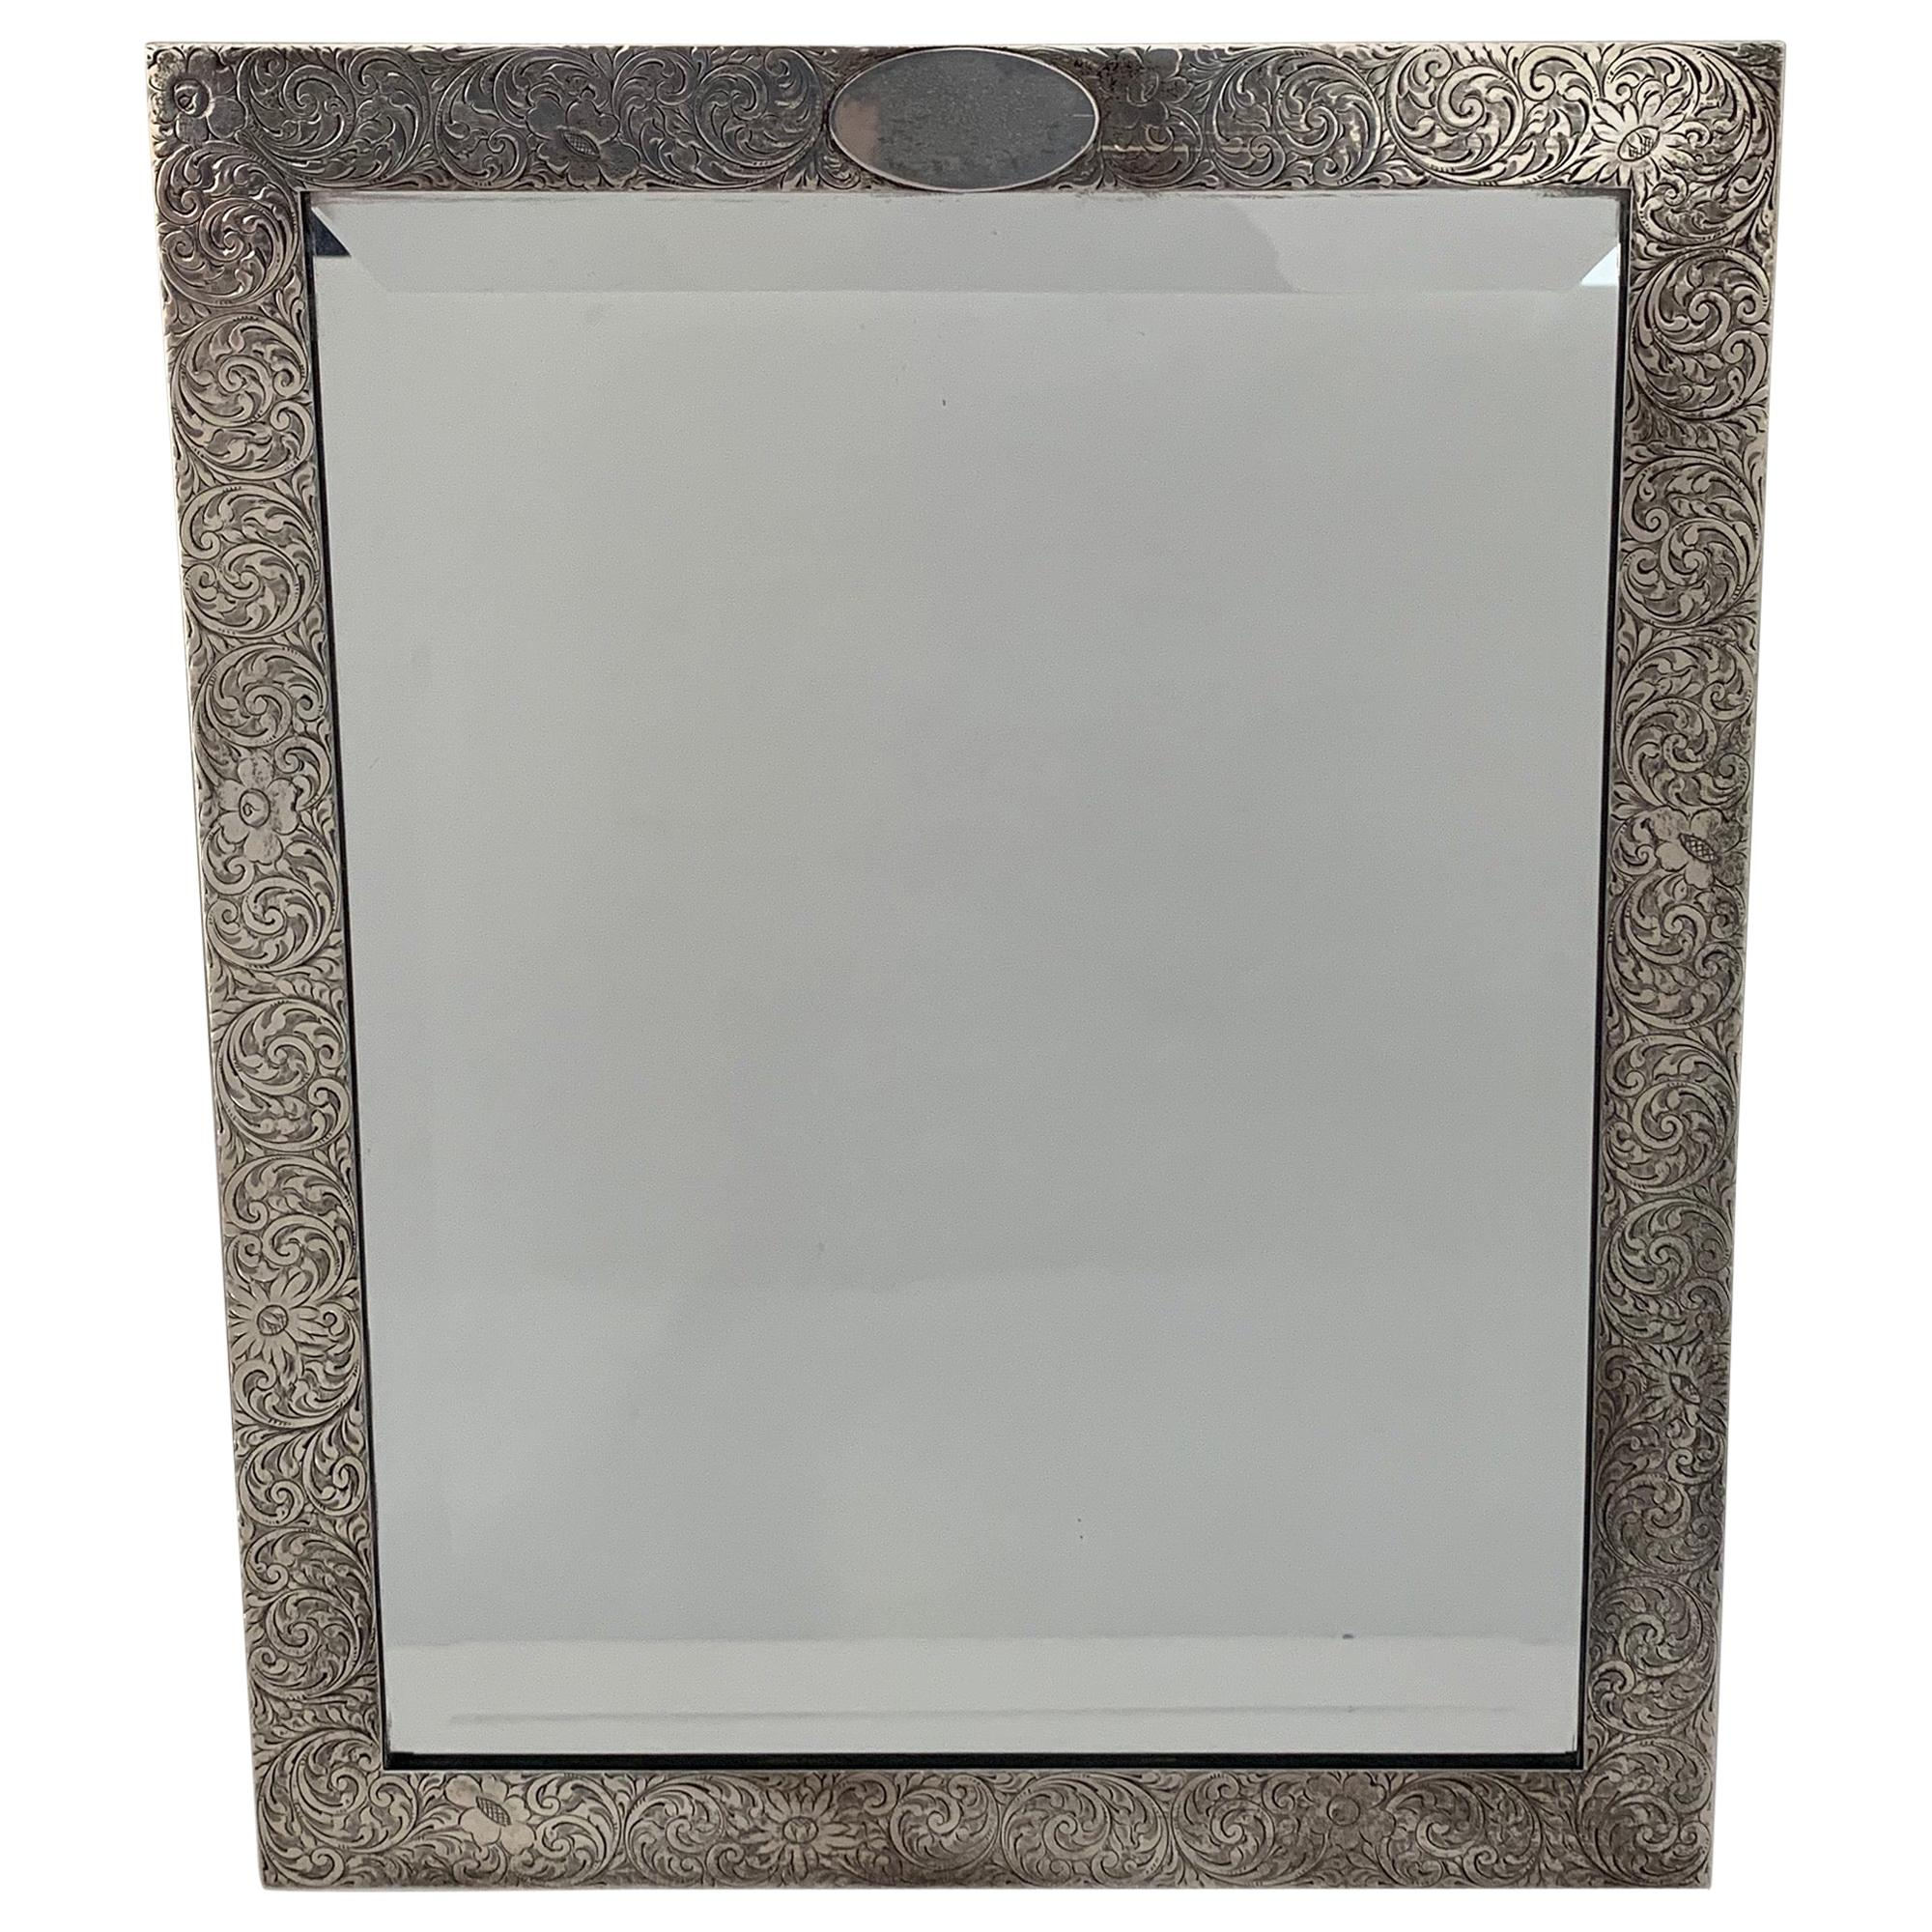 Tiffany & Co. Large Sterling Silver Picture Frame or Vanity Mirror